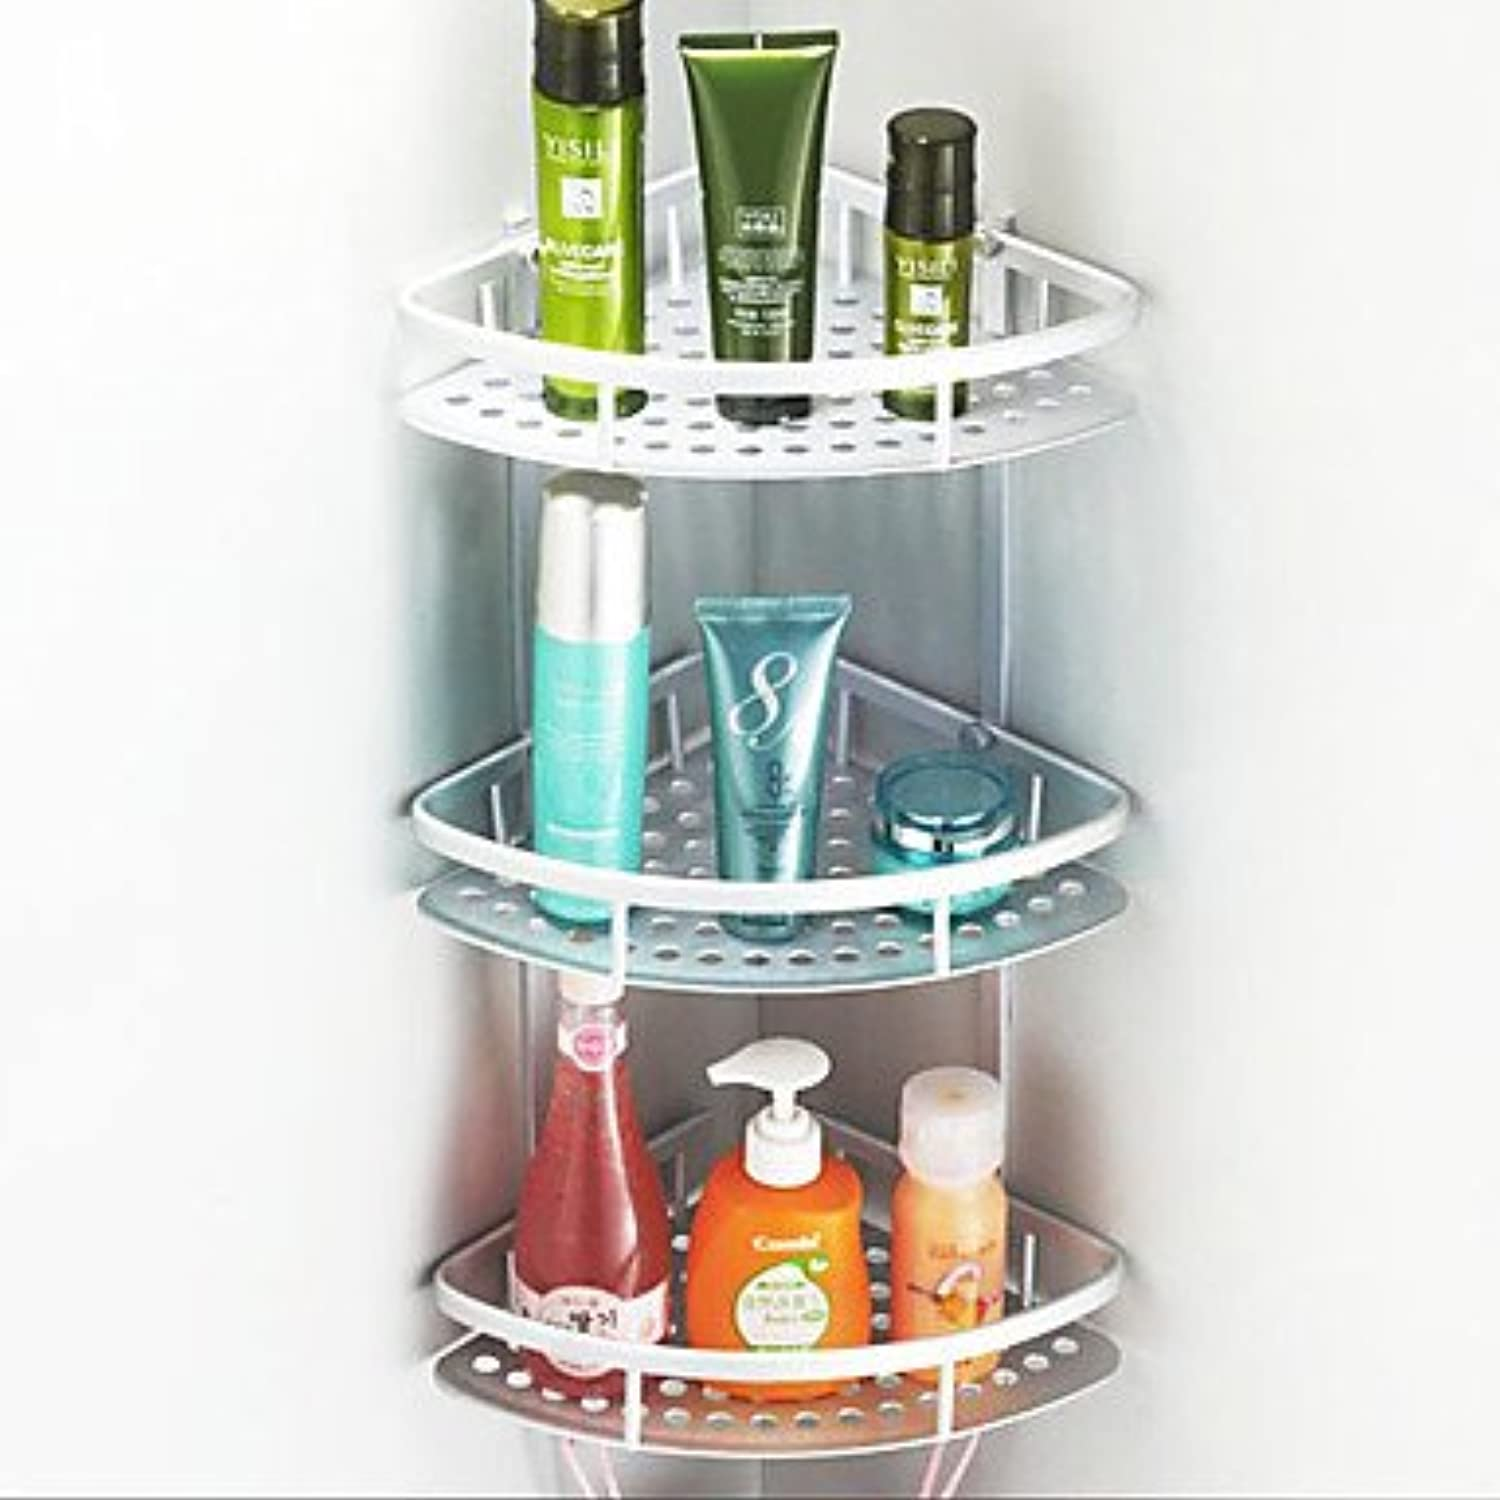 WYMBS Excellent Bathroom Space Aluminum Bathroom Shelf